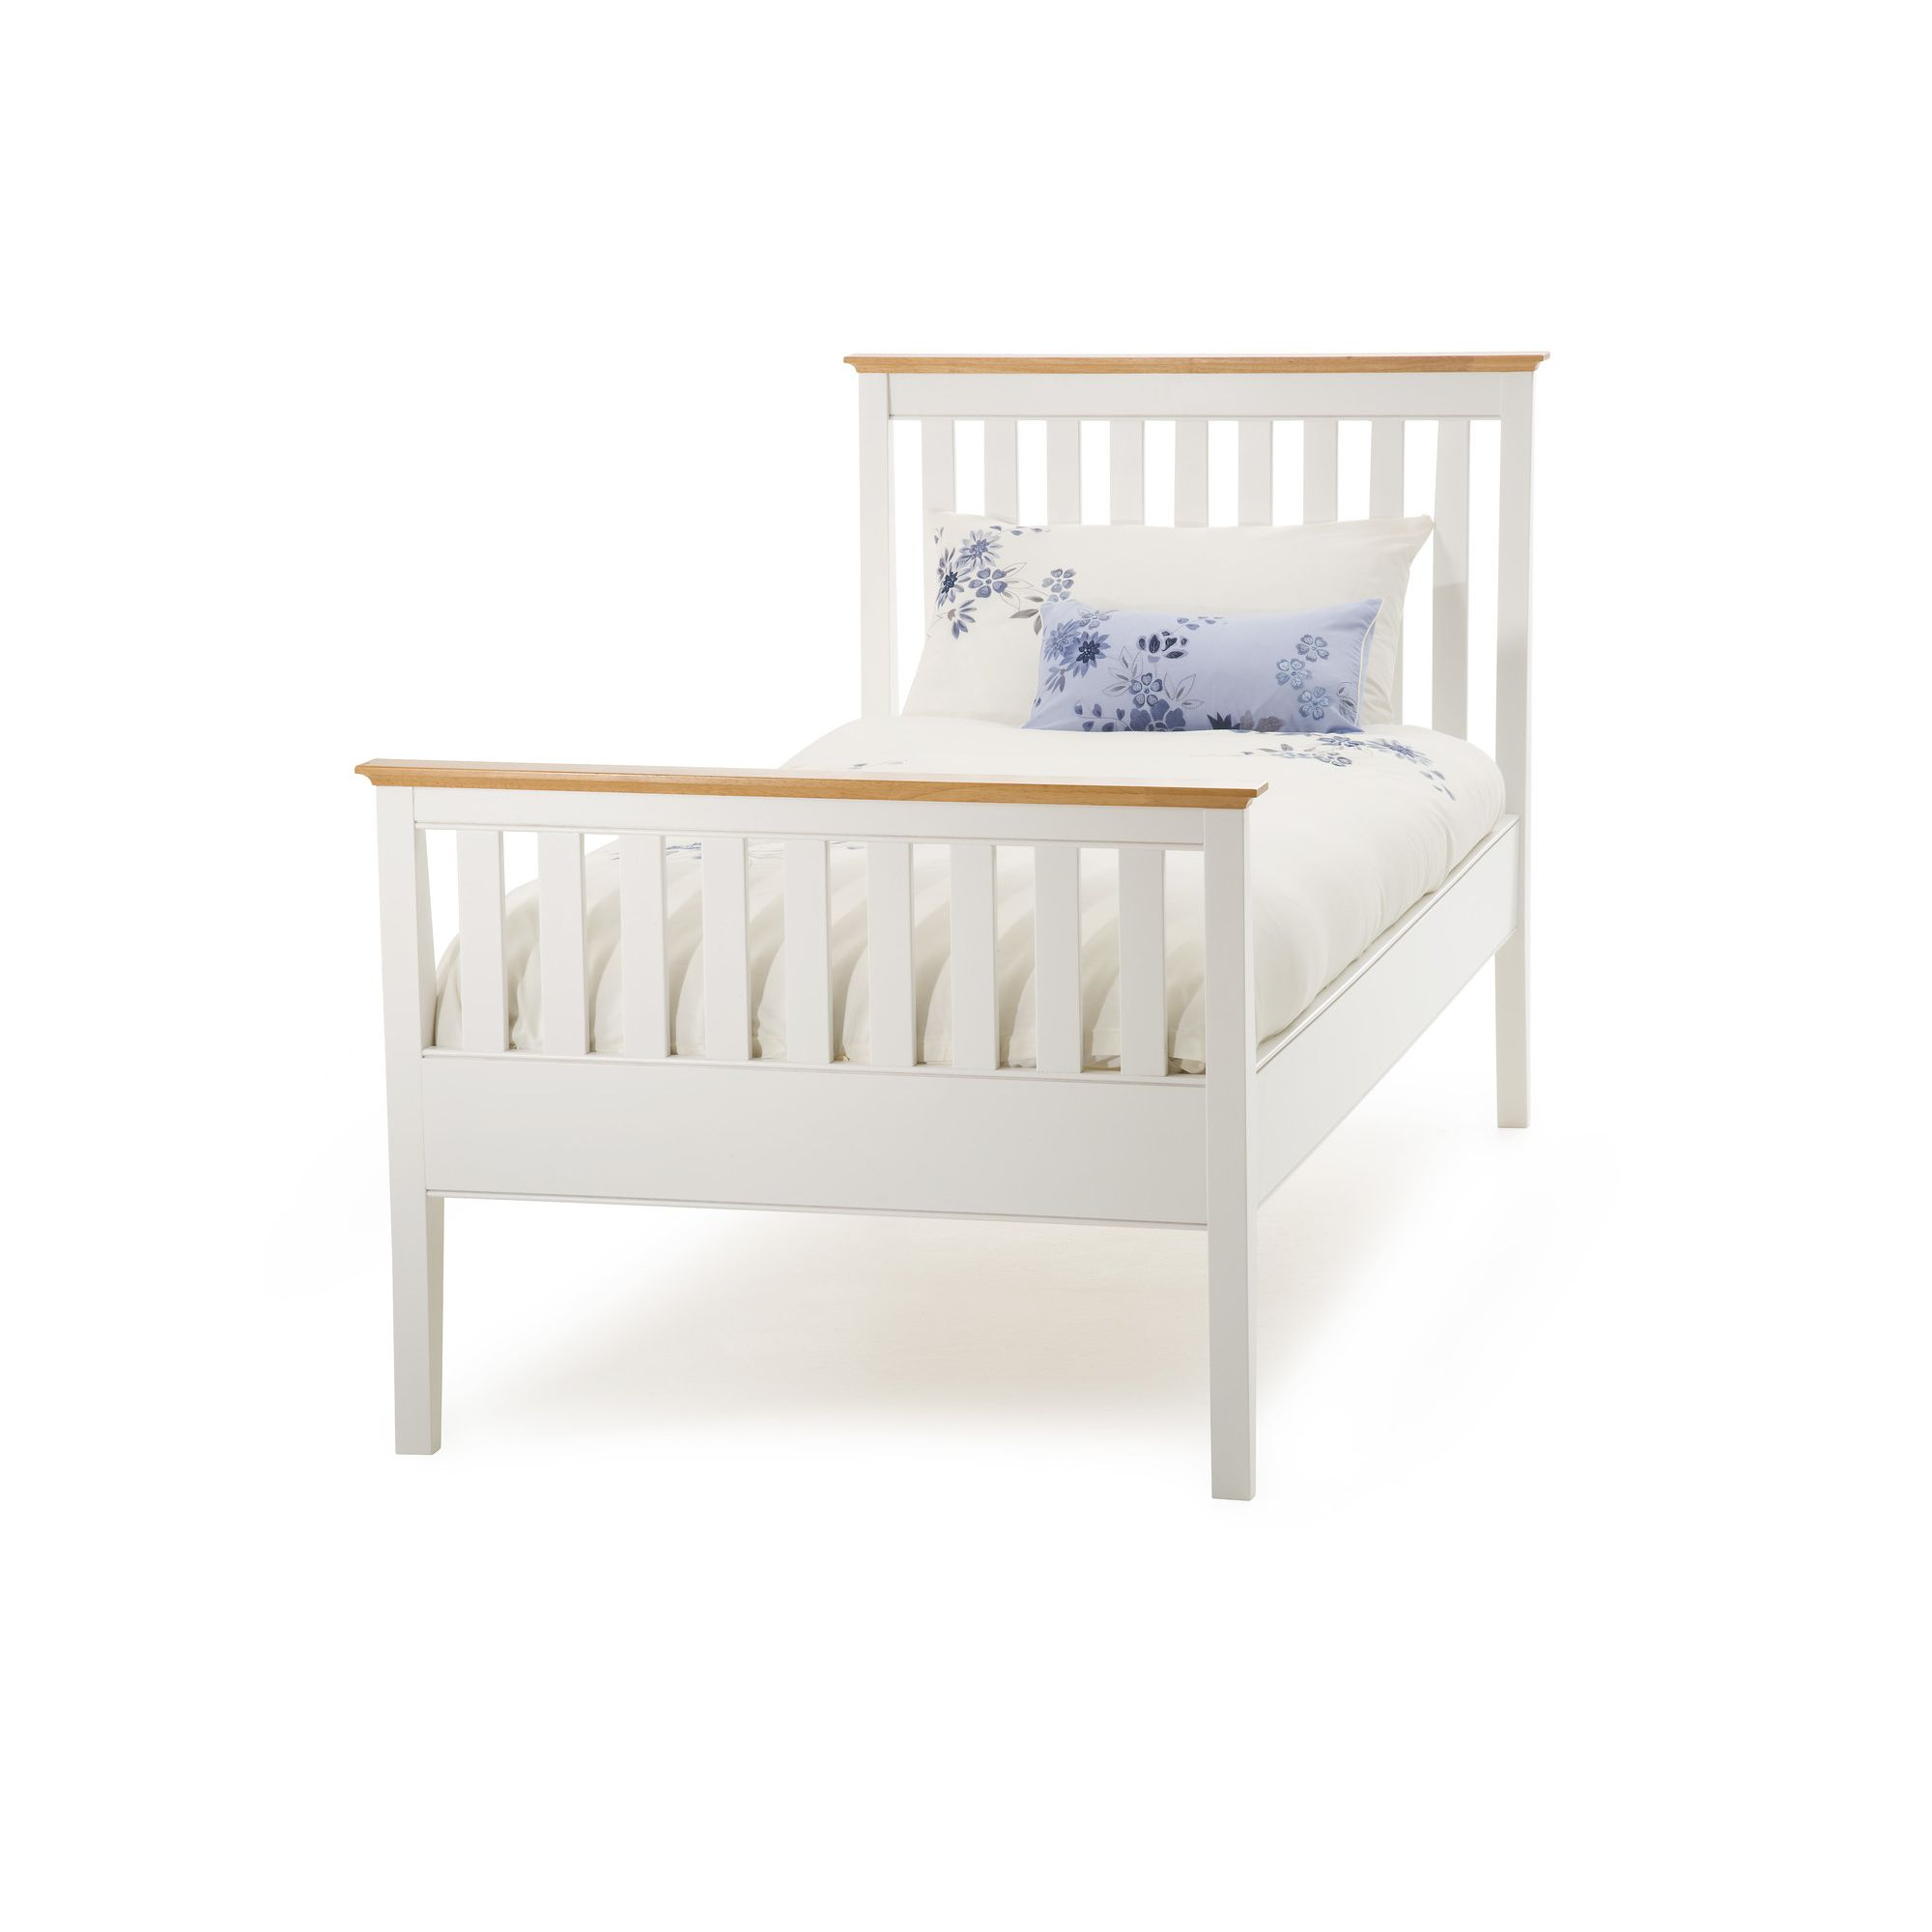 Serene Furnishings Grace High Foot End Bed - Golden Cherry with Opal White - Small Double at Tesco Direct